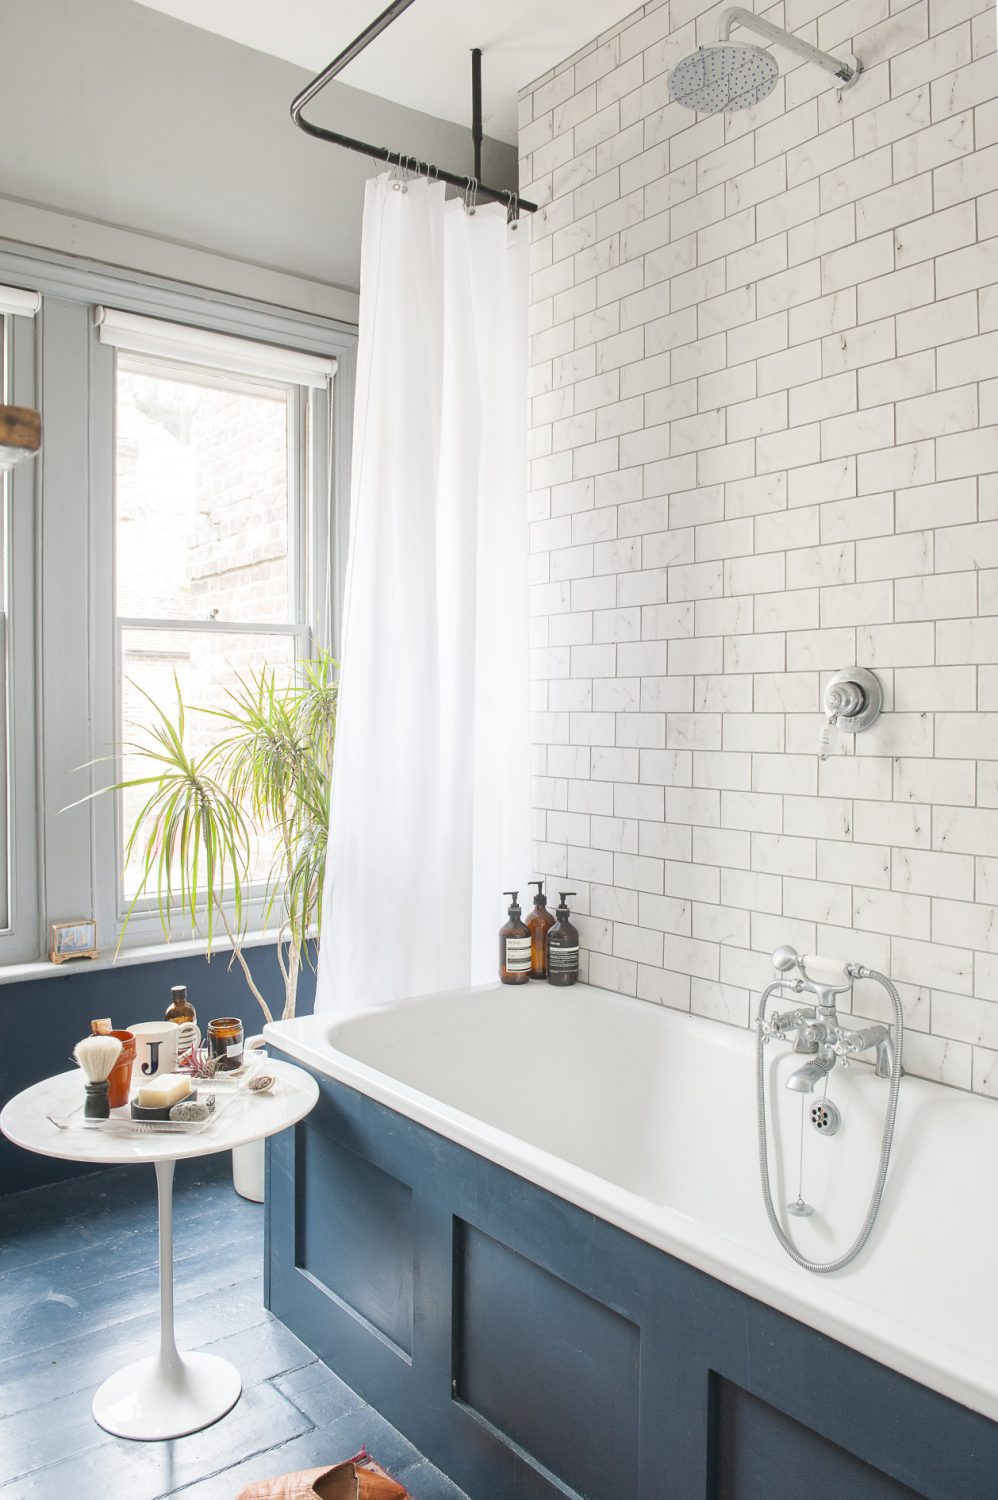 In the sparkling, 1930s-feel bathroom the floorboards are painted in the magnificent Hague Blue by Farrow & Ball.